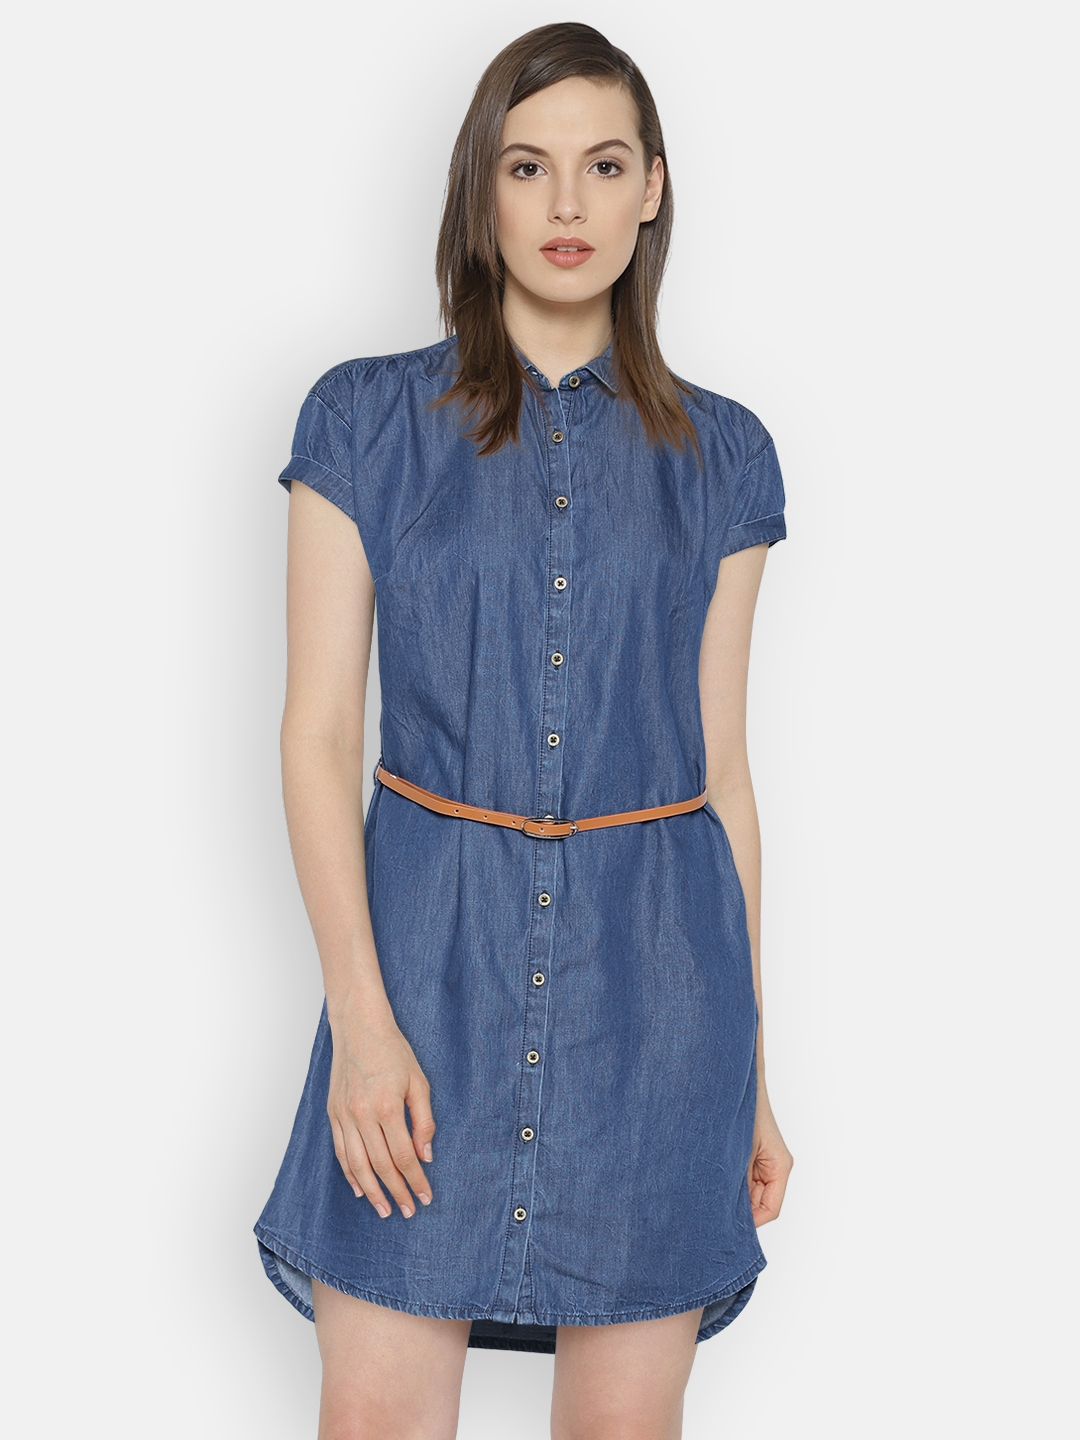 ccb3fbdcb2 Buy Pepe Jeans Women Blue Solid Shirt Dress - Dresses for Women ...